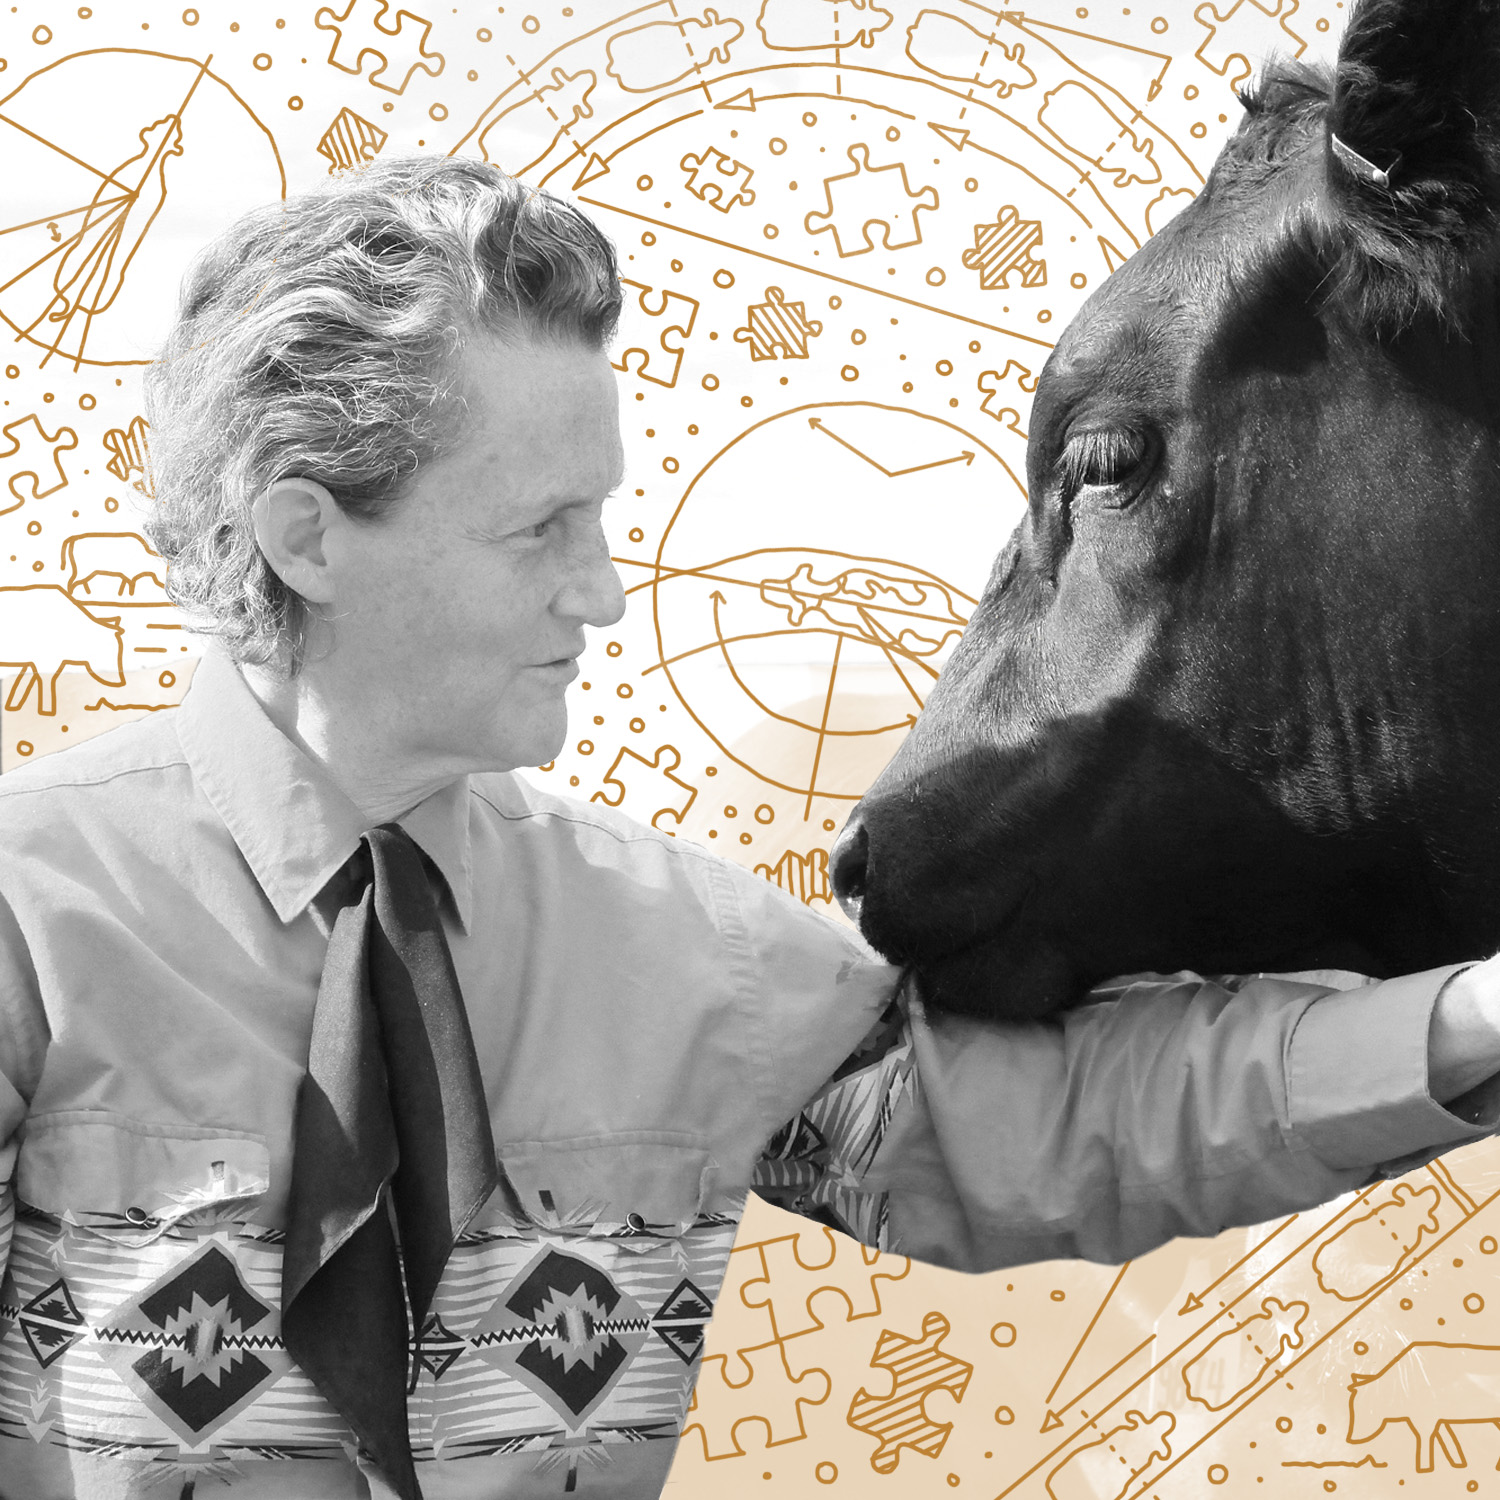 """Mary Temple Grandin    Mary Temple Grandin is an American professor of animal science at Colorado State University, consultant to the livestock industry on animal behavior, and autism spokesperson. She is one of the first individuals on the autism spectrum to publicly share insights from her personal experience of autism, and invented the """"hug box"""" device to calm those on the autism spectrum."""